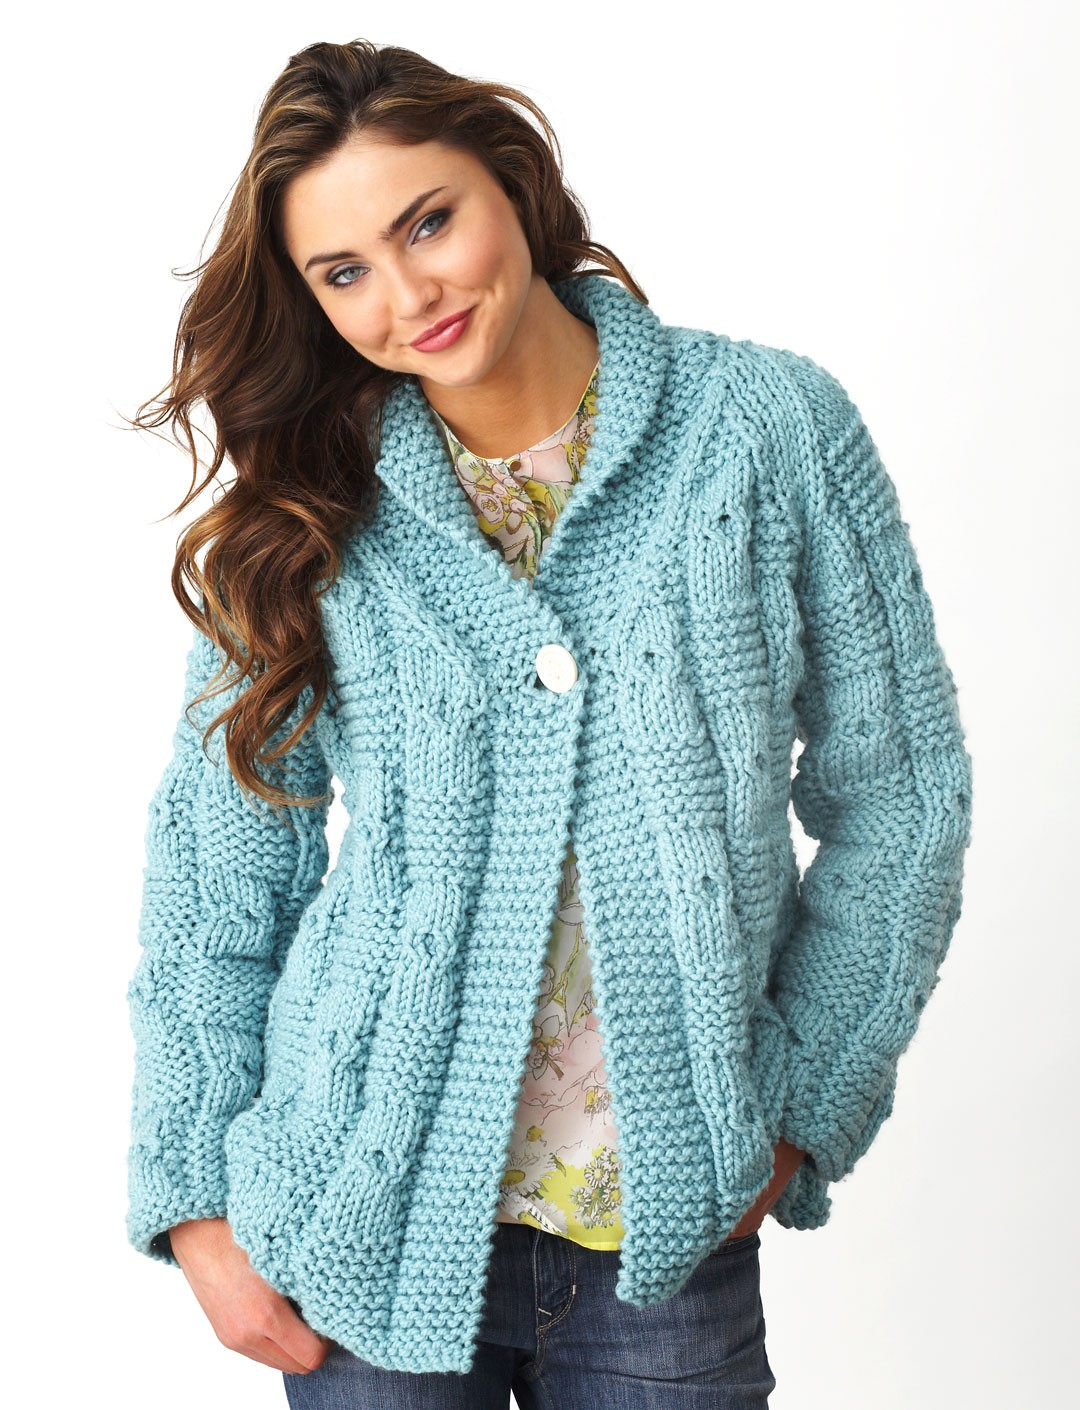 Knitting Patterns For Ladies Cardigans Free : Bernat Textured Checks Cardigan, Knit Pattern Yarnspirations